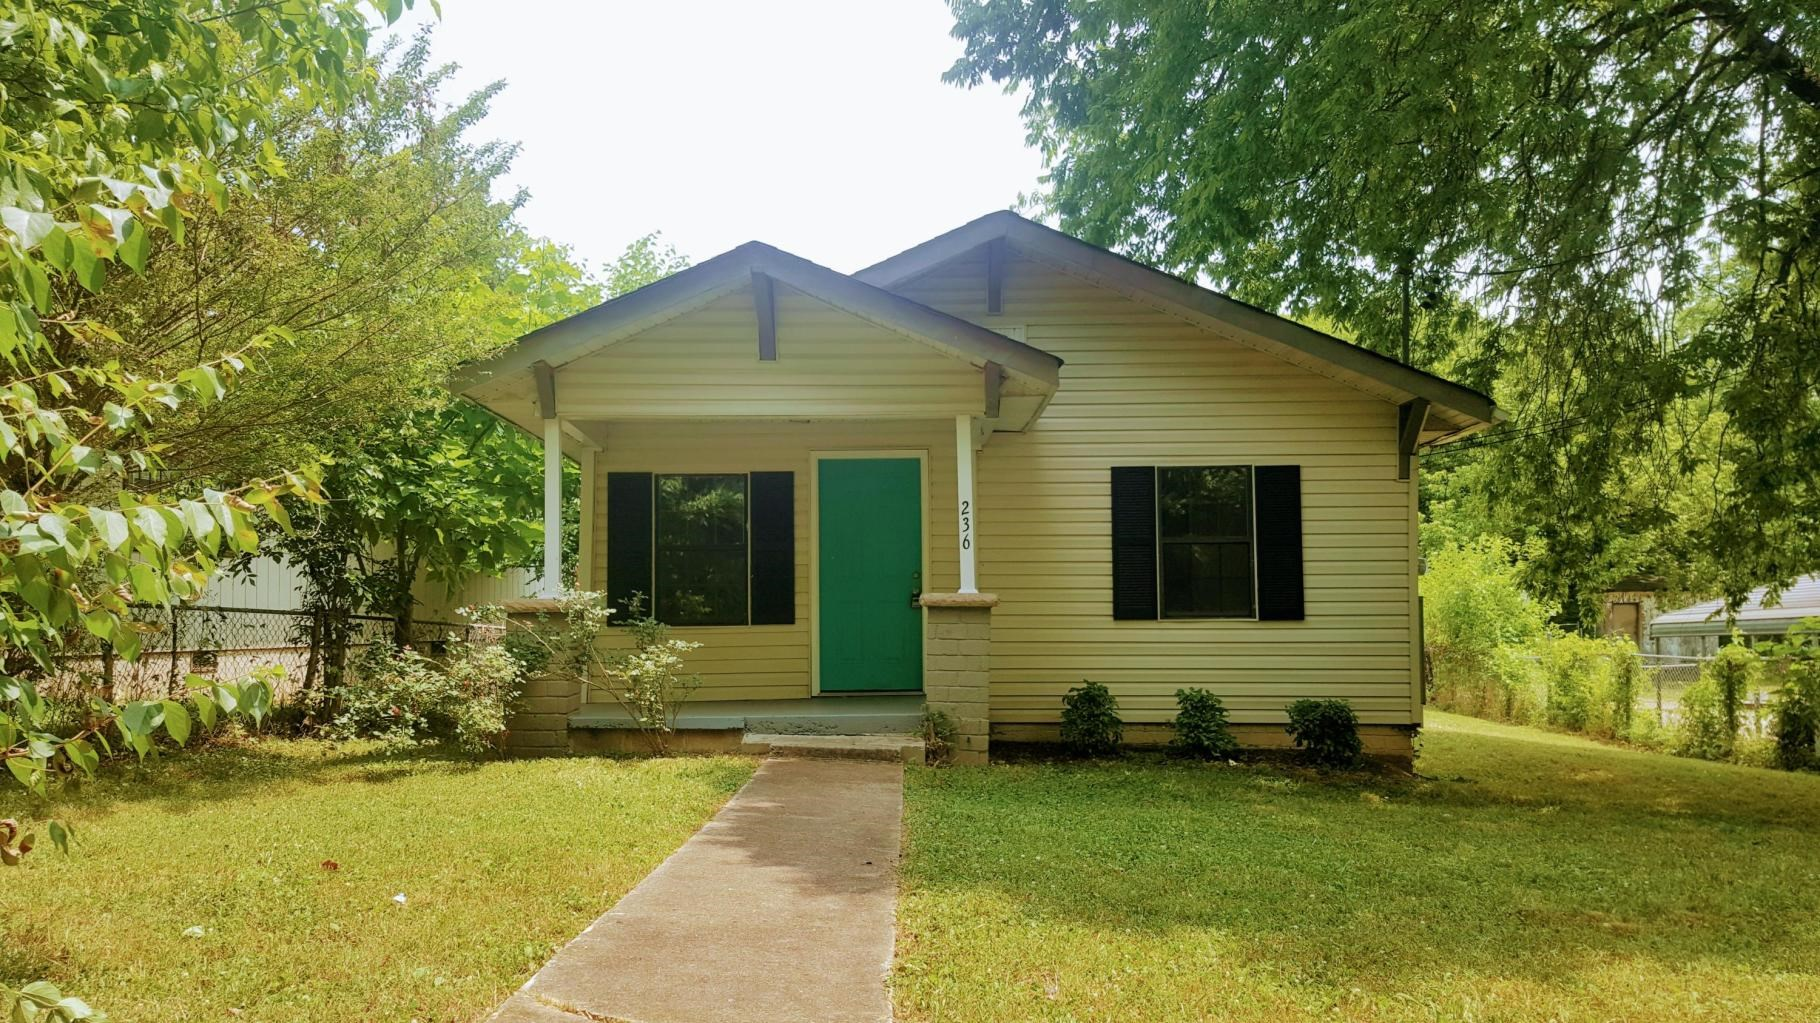 Home For Sale in Knoxville, Tennessee - Knox County